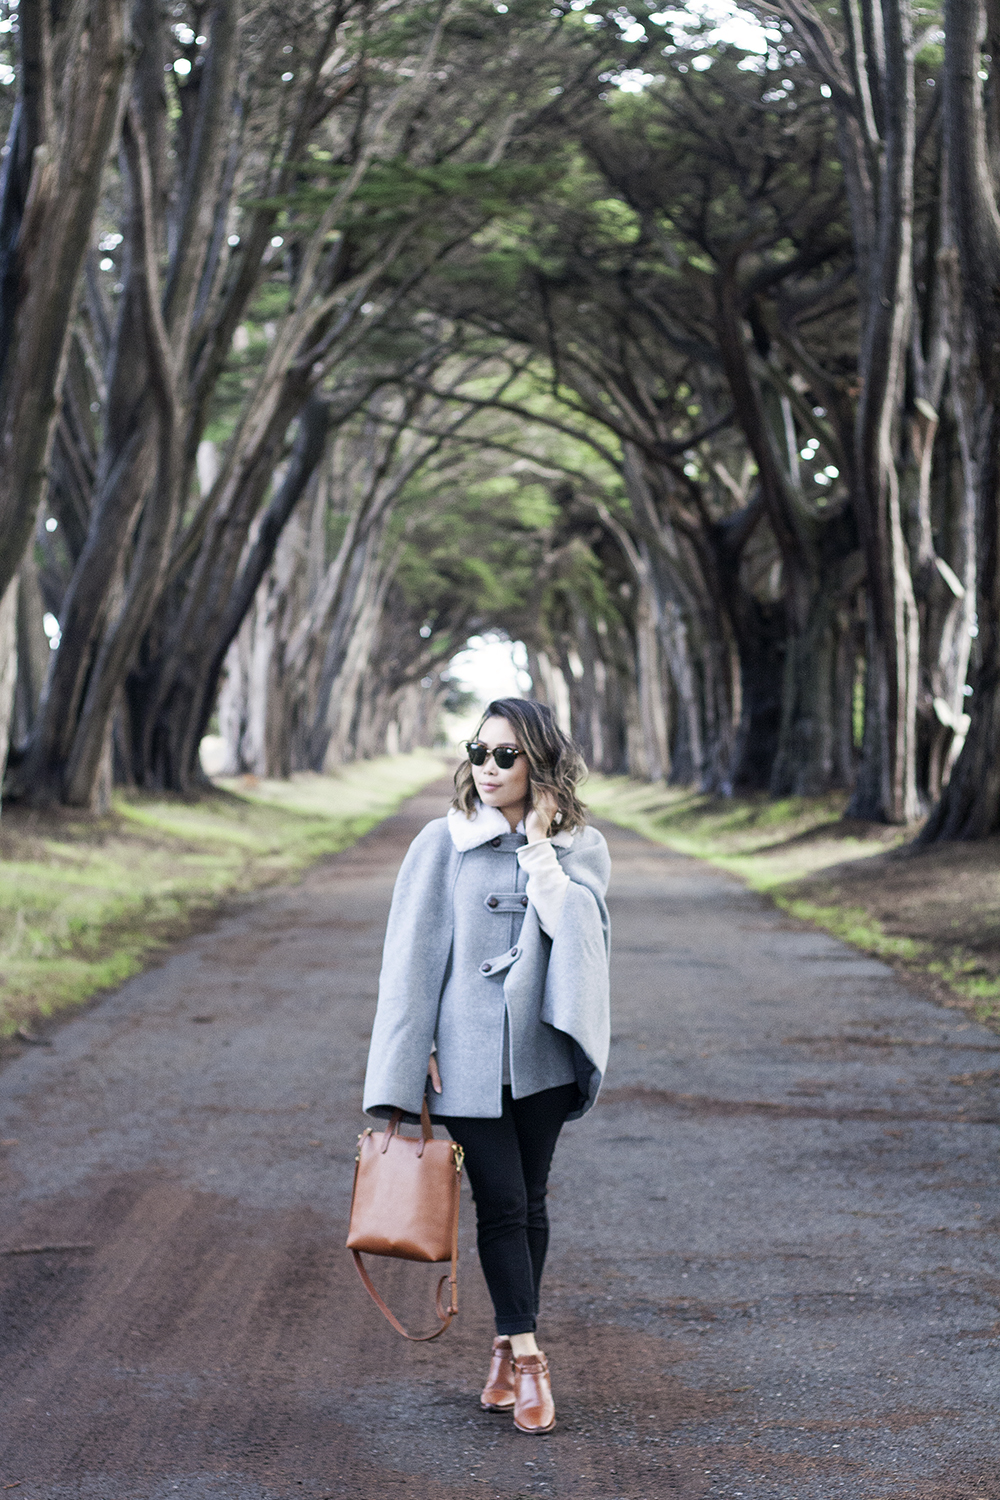 04pointreyes-cypresstreetunnel-madewell-fashion-travel-style